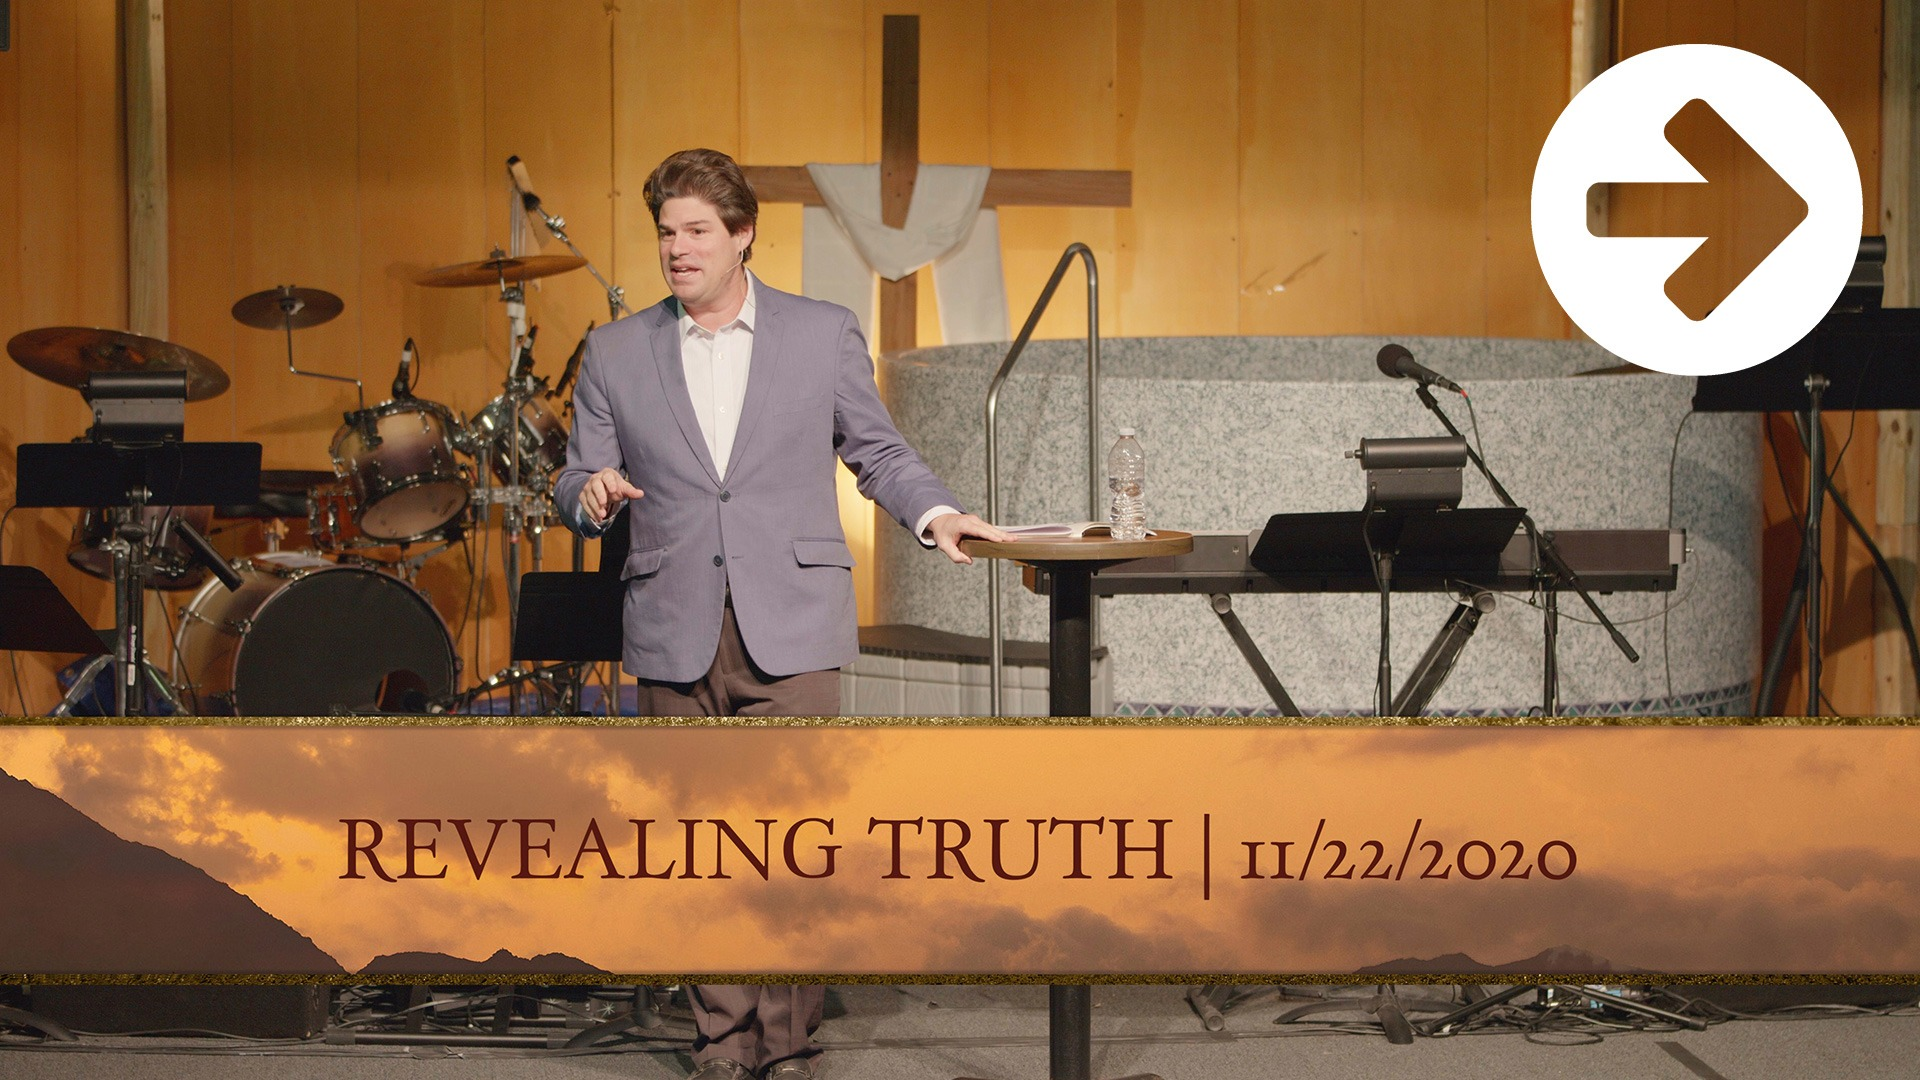 Revealing Truth Image